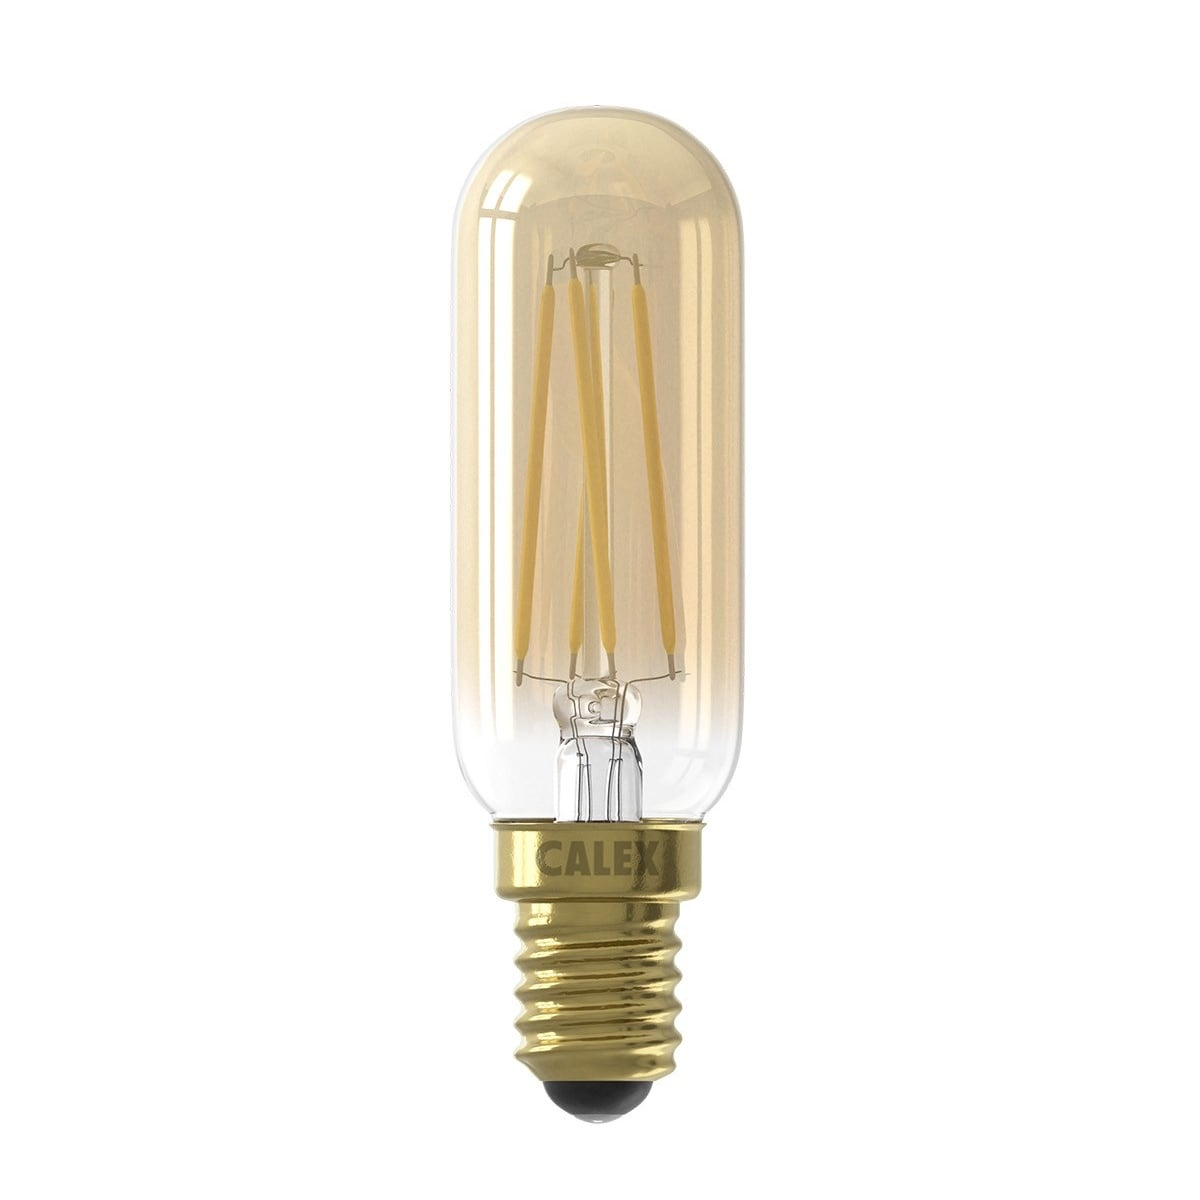 Calex Goldline Calex Filament E14 Led Small Tubular Bulb Warm White Dimmable